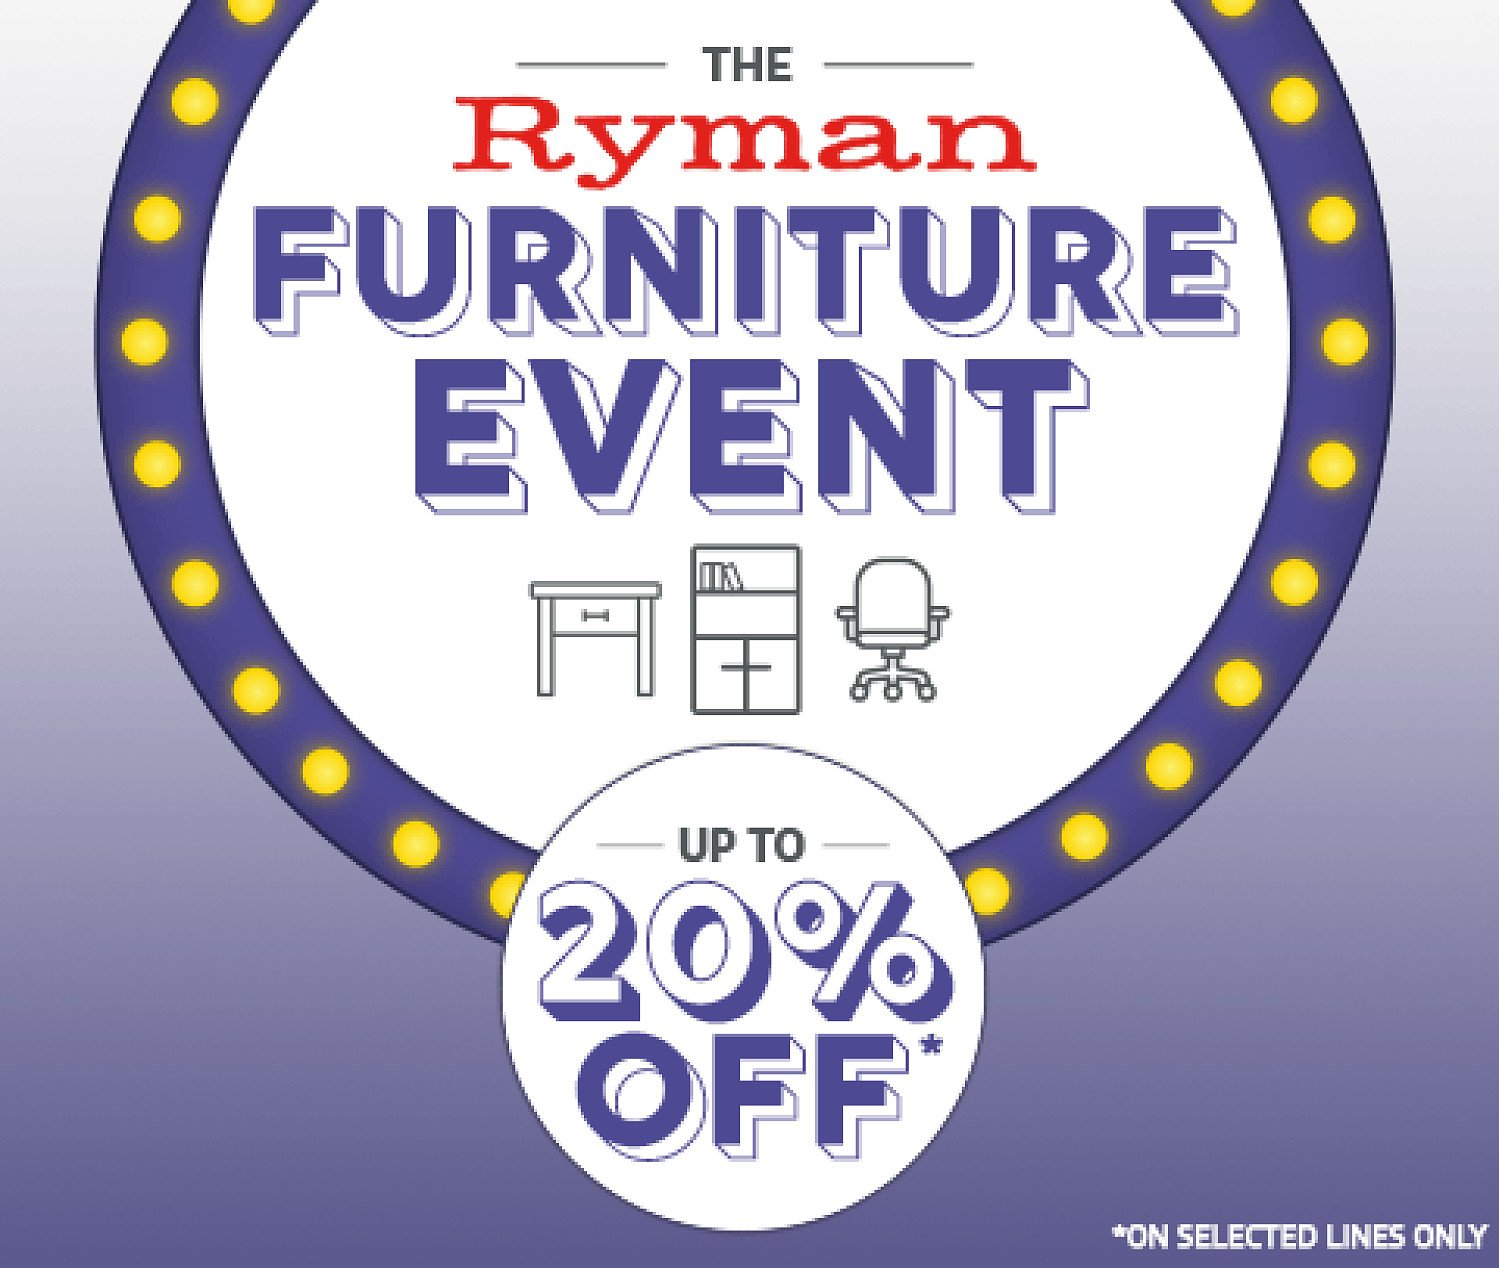 Save Up To 20% On Furniture in the Ryman Furniture Event!